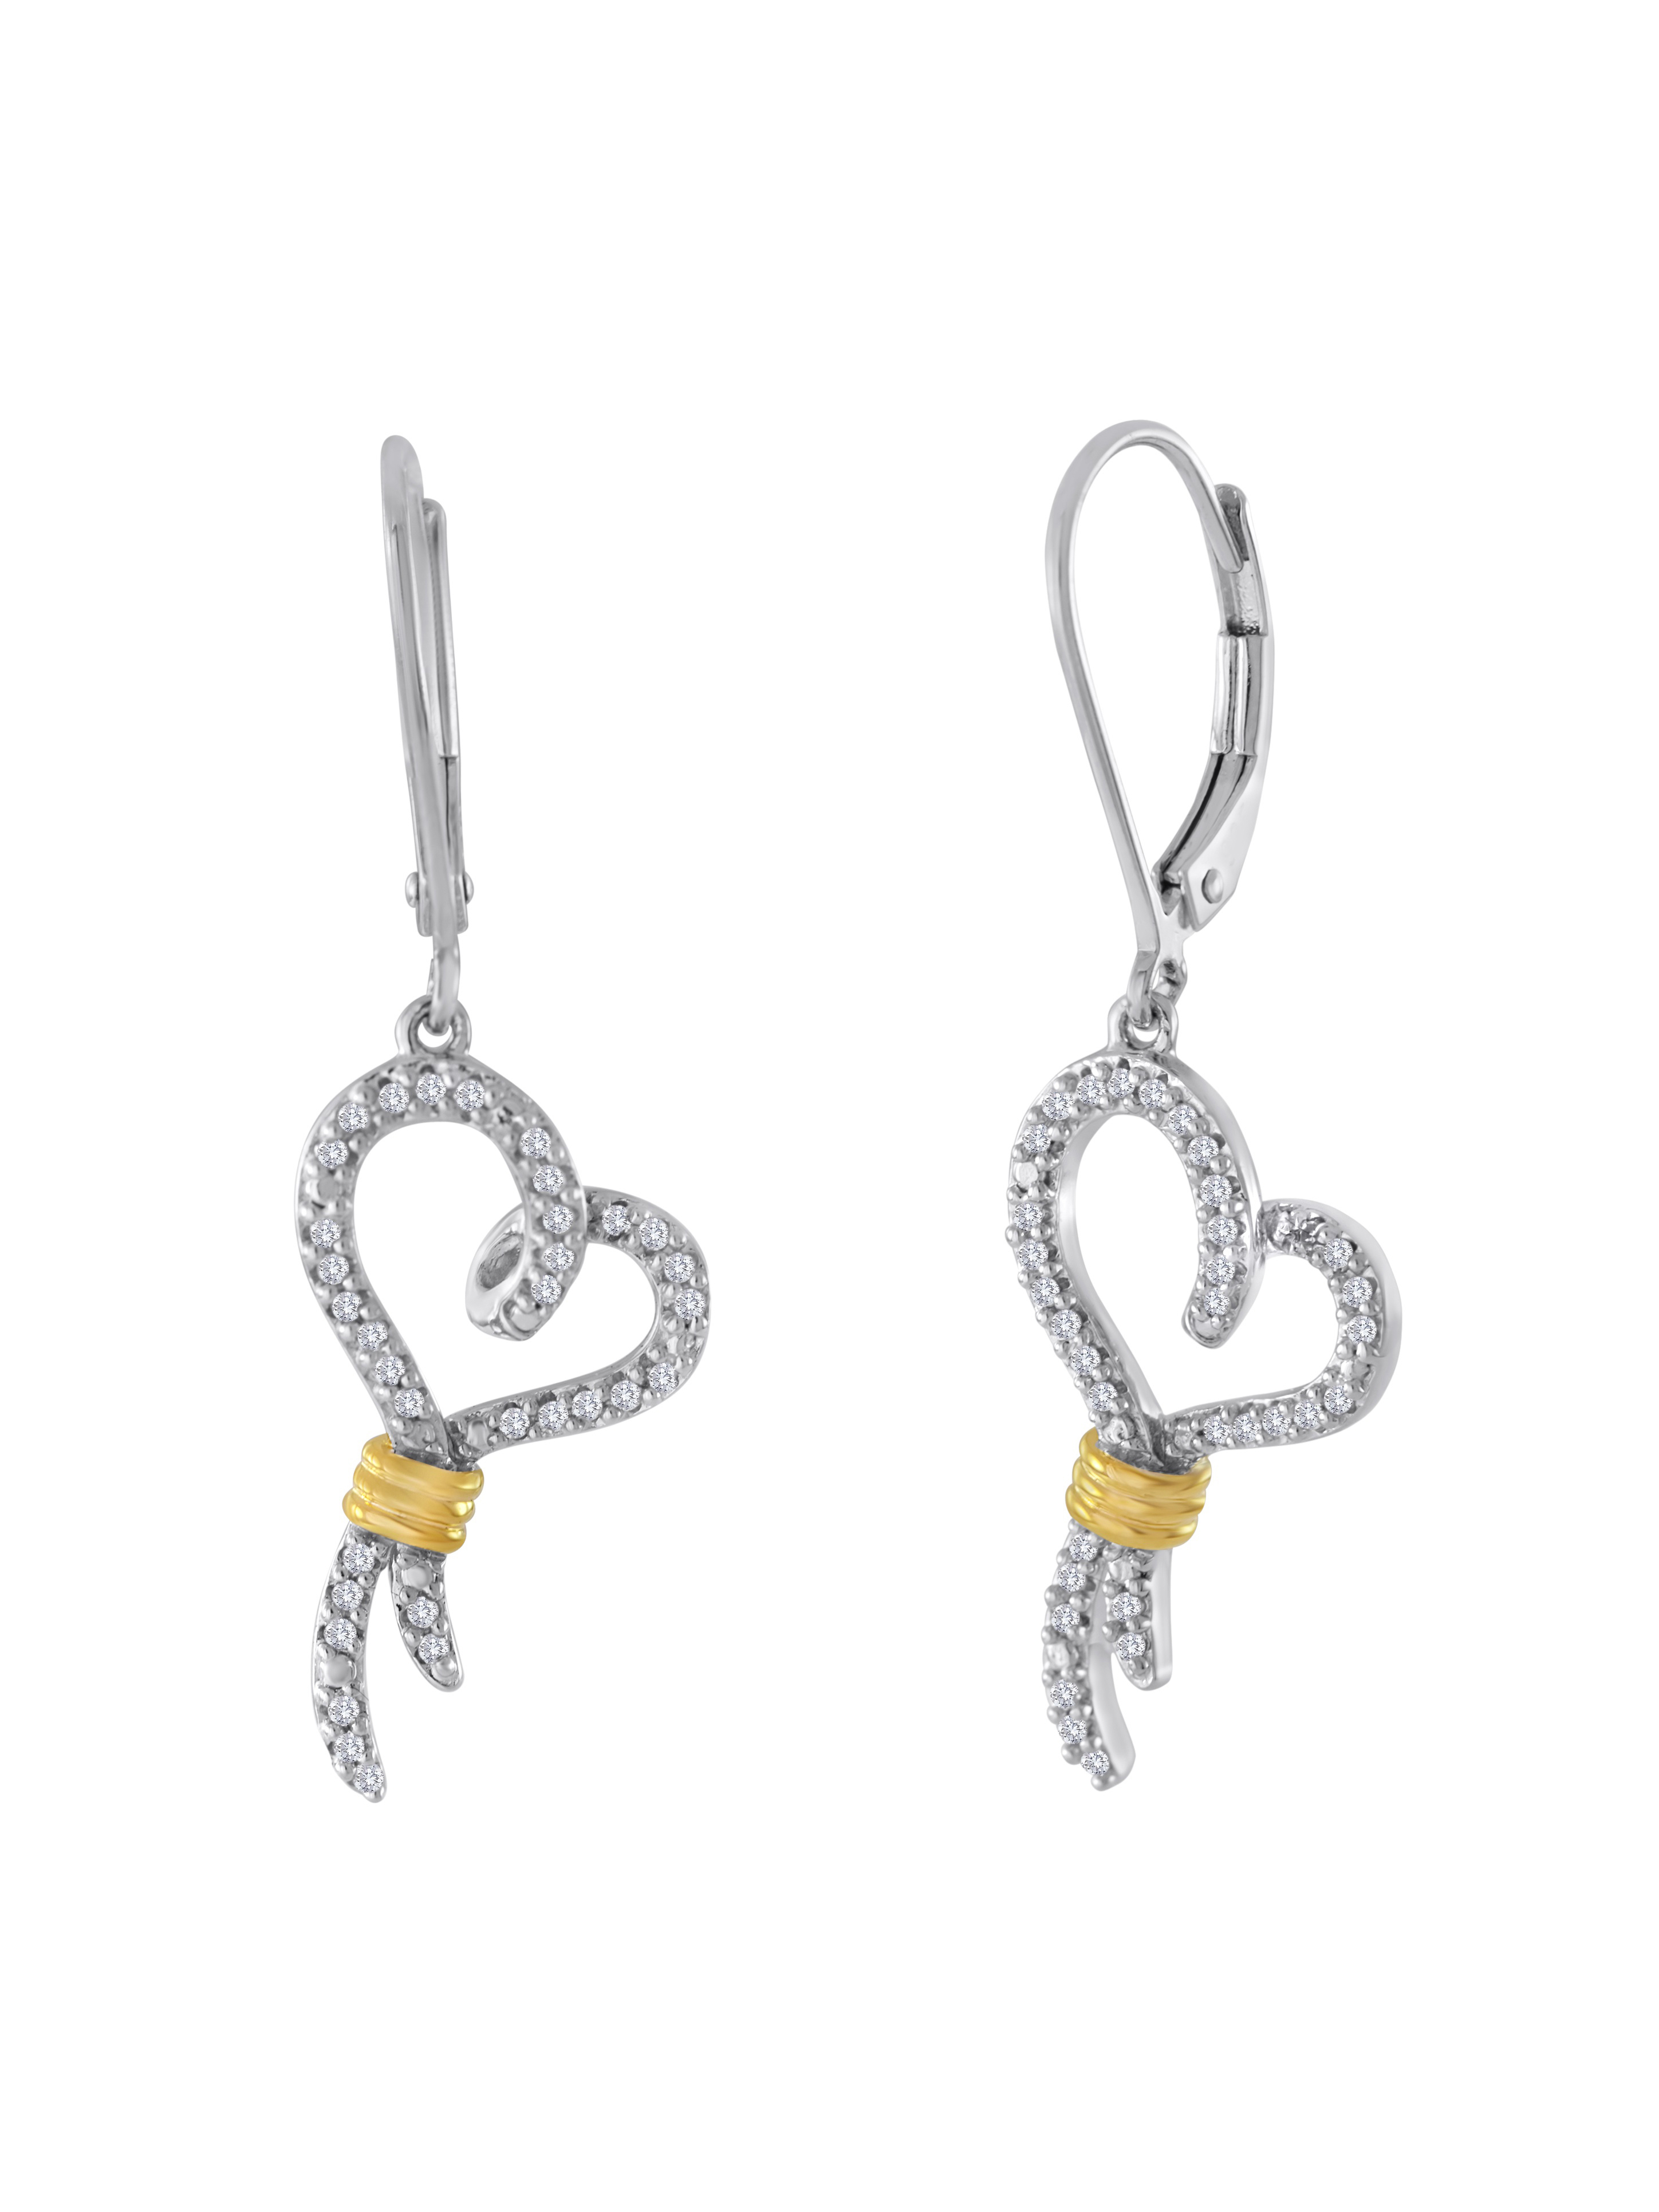 Knots of Love 14kt Yellow Gold over Sterling Silver 1/4 Carat T.W. Diamond Earrings